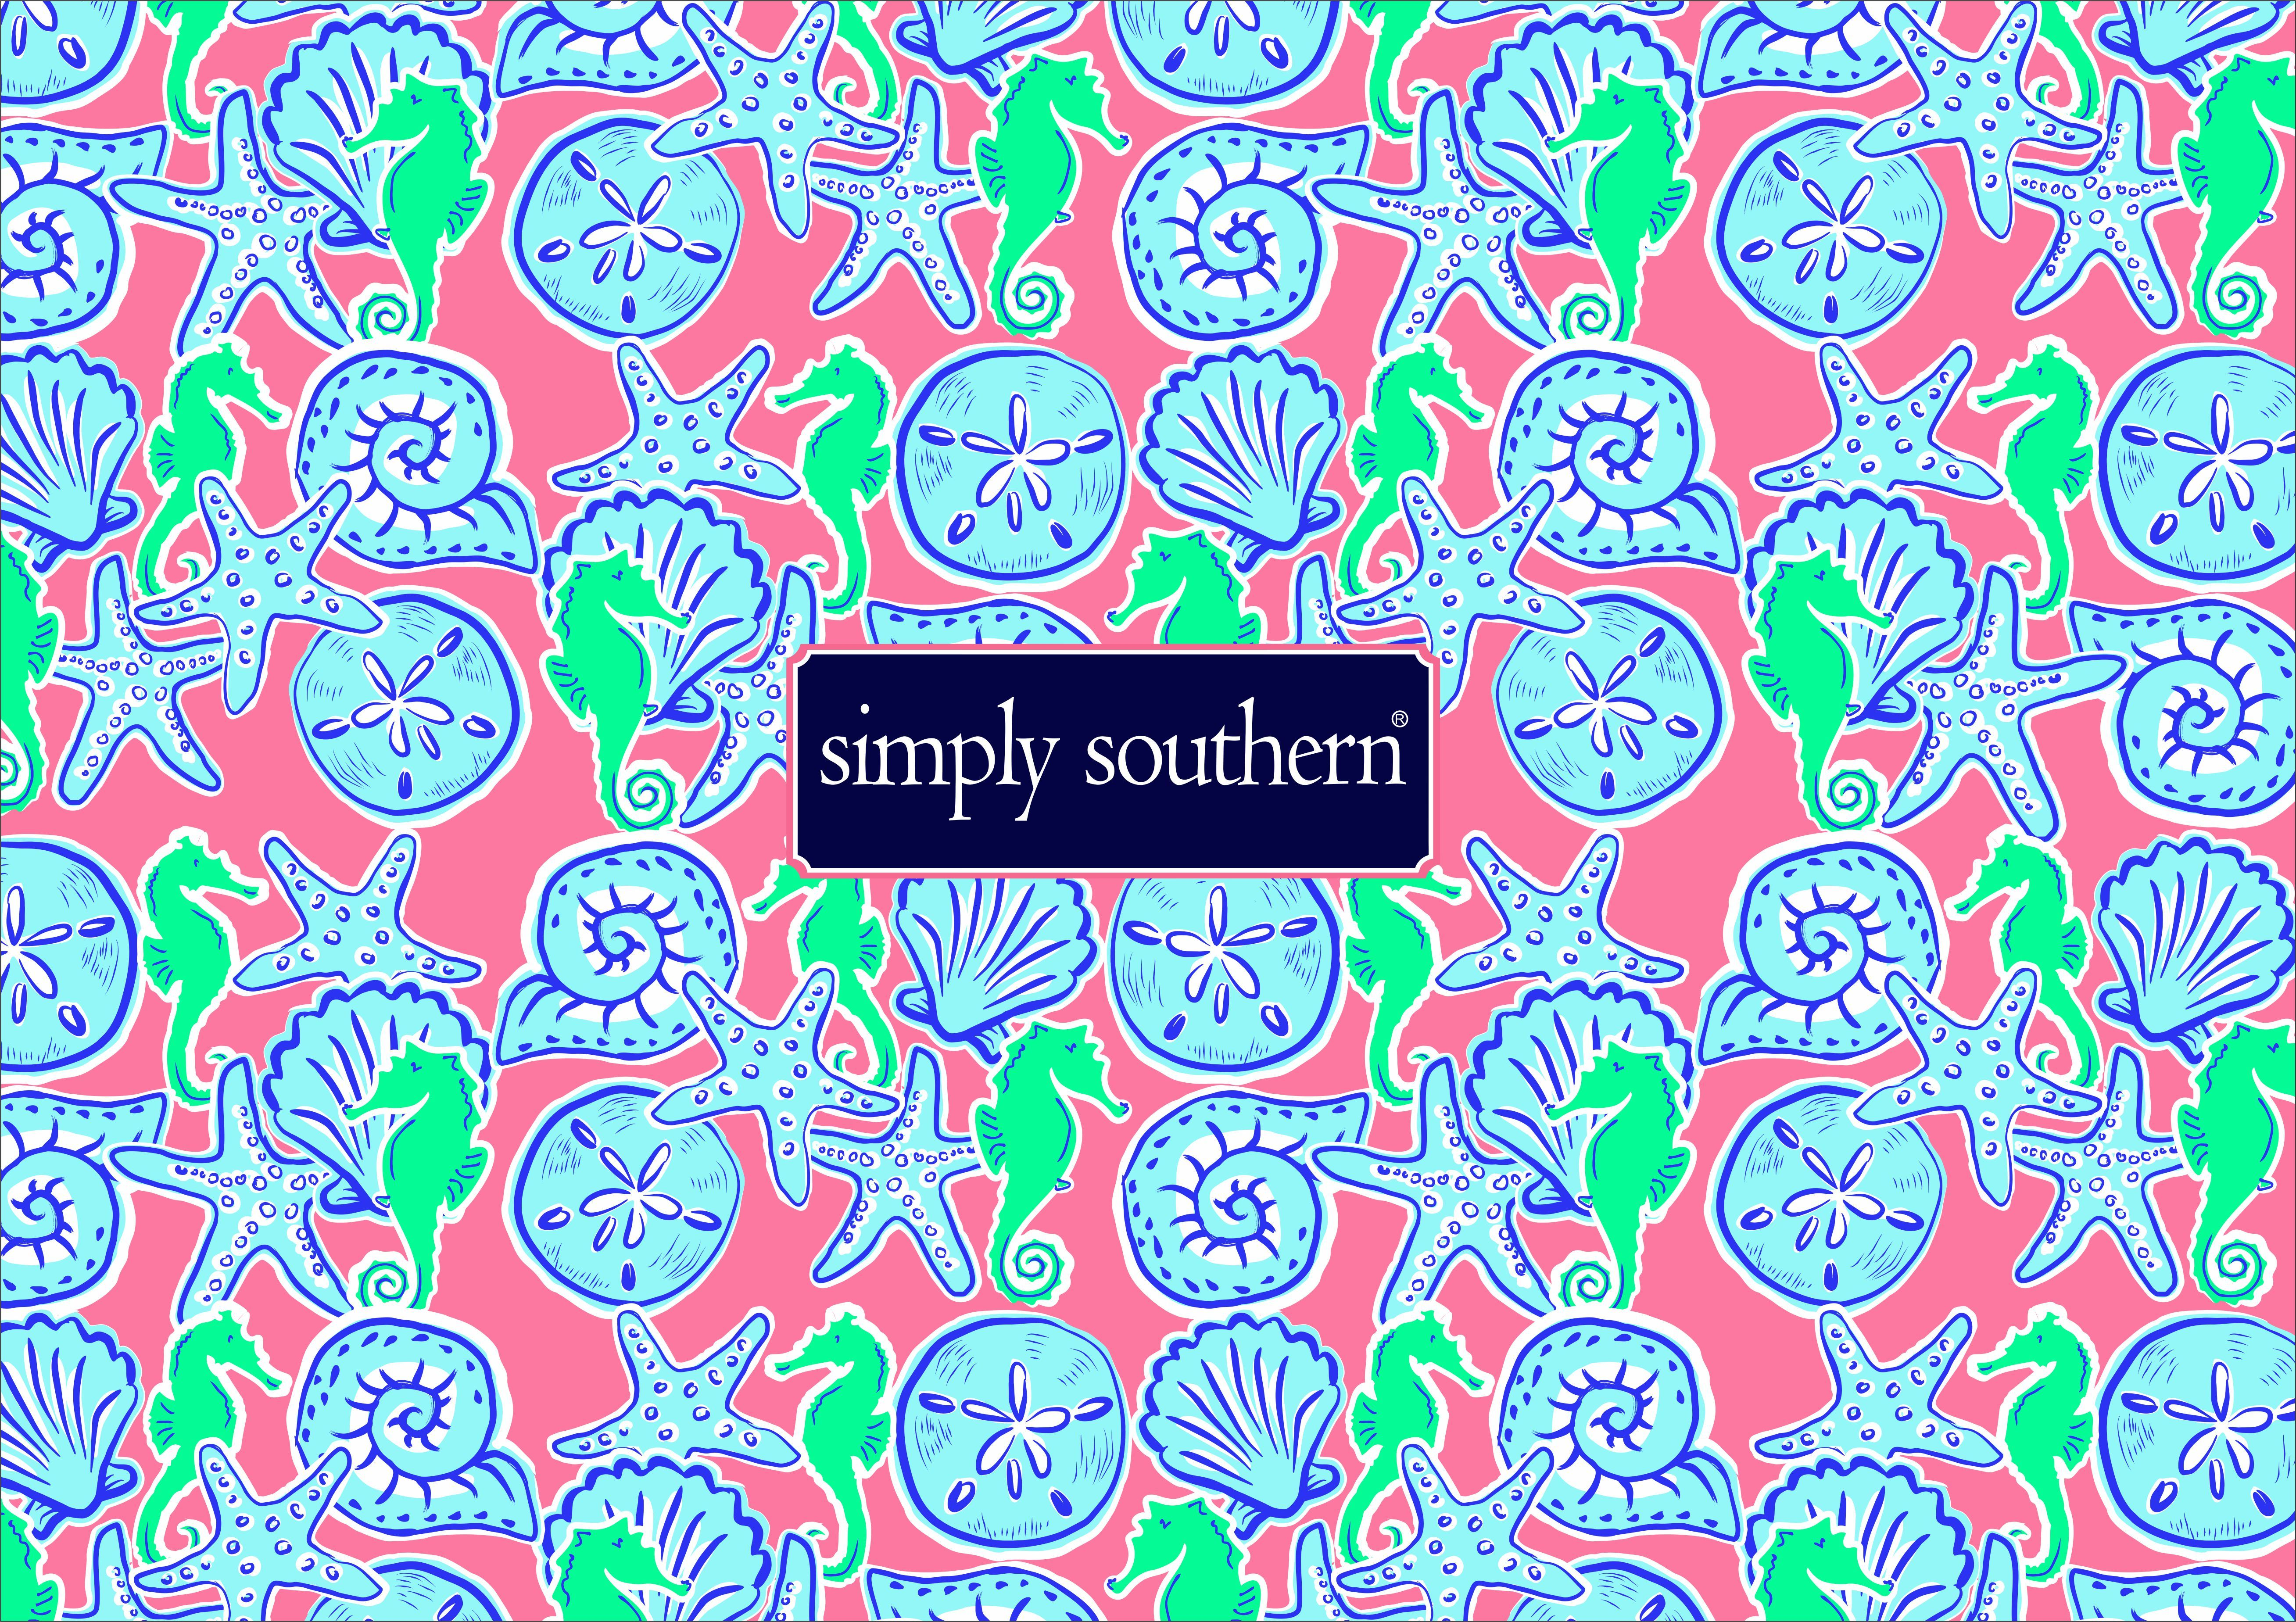 Simply southern wallpaper simply southern pinterest - Simply southern backgrounds ...